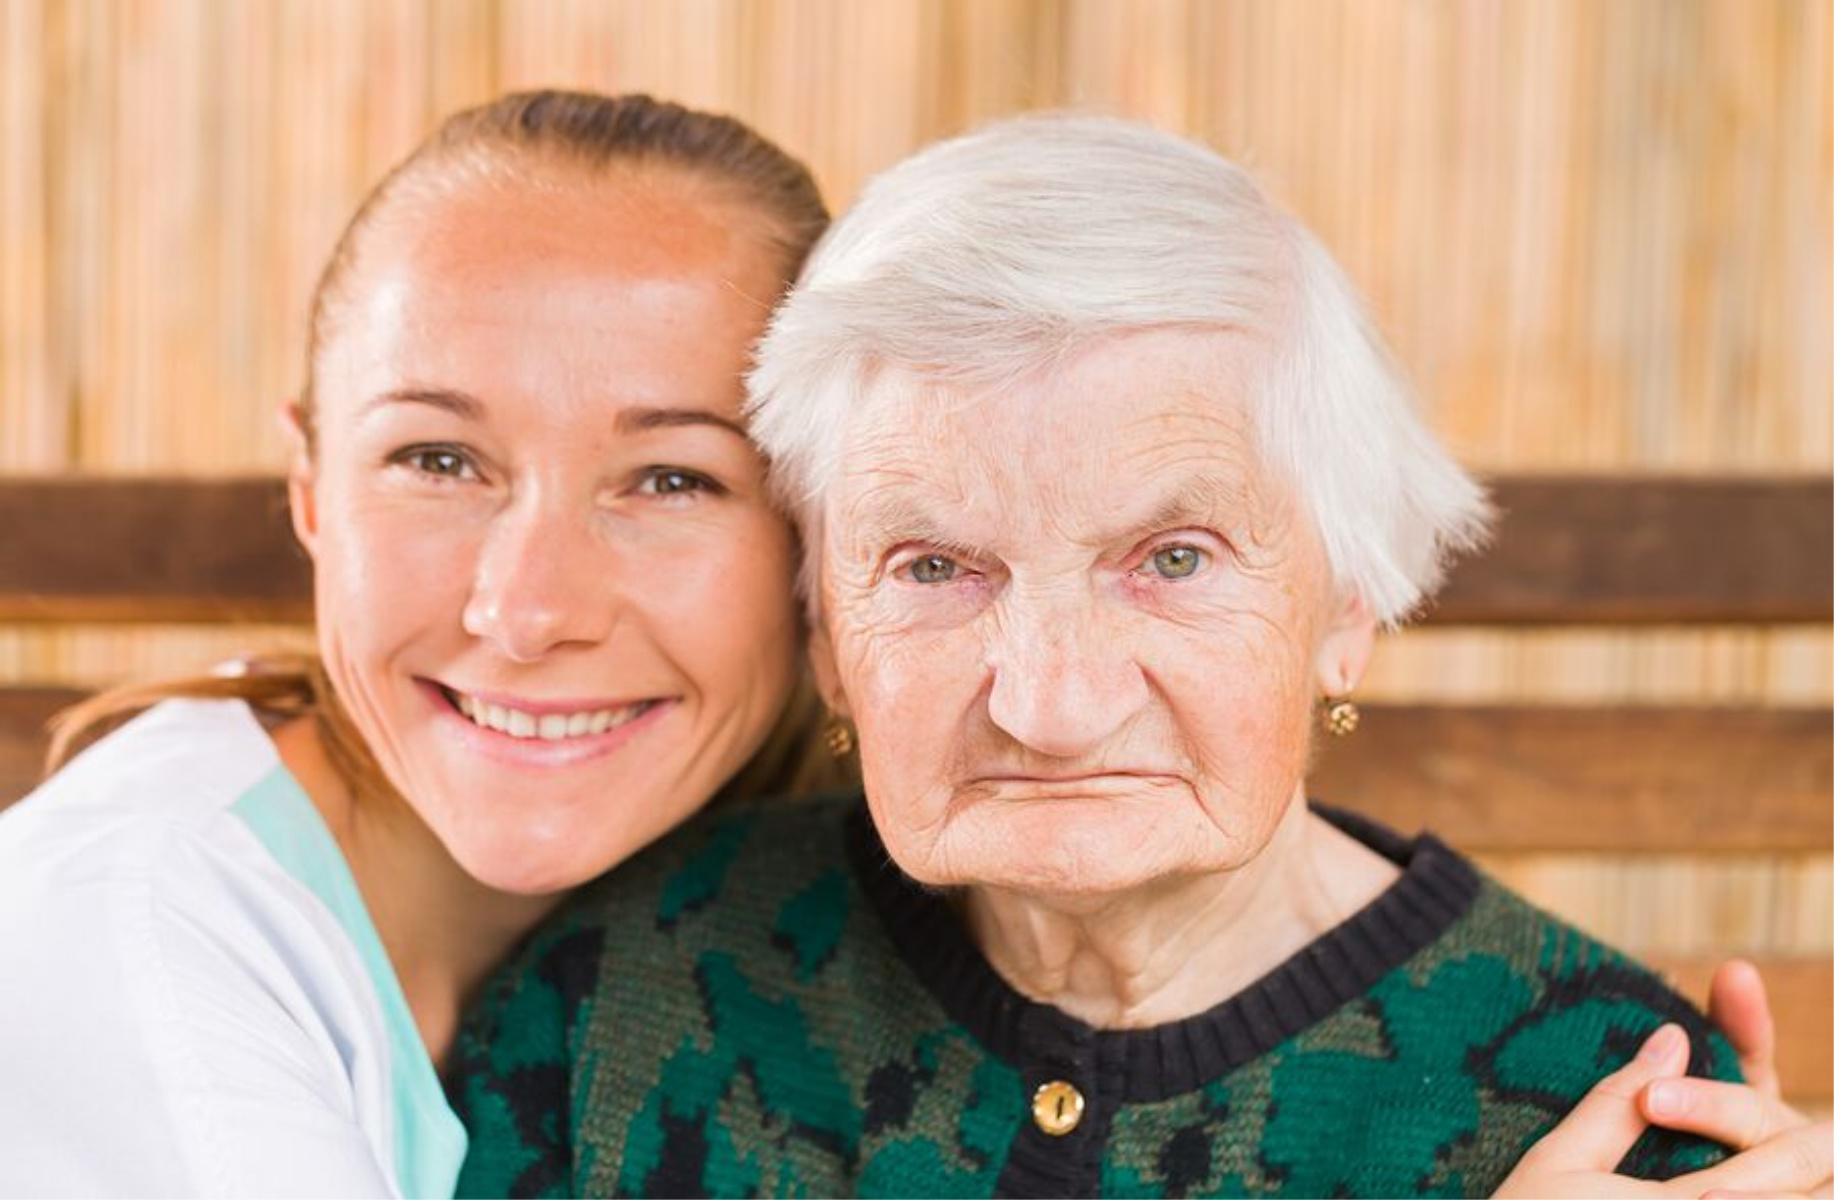 Home Health Care in Clairton PA: Senior Care Discussions